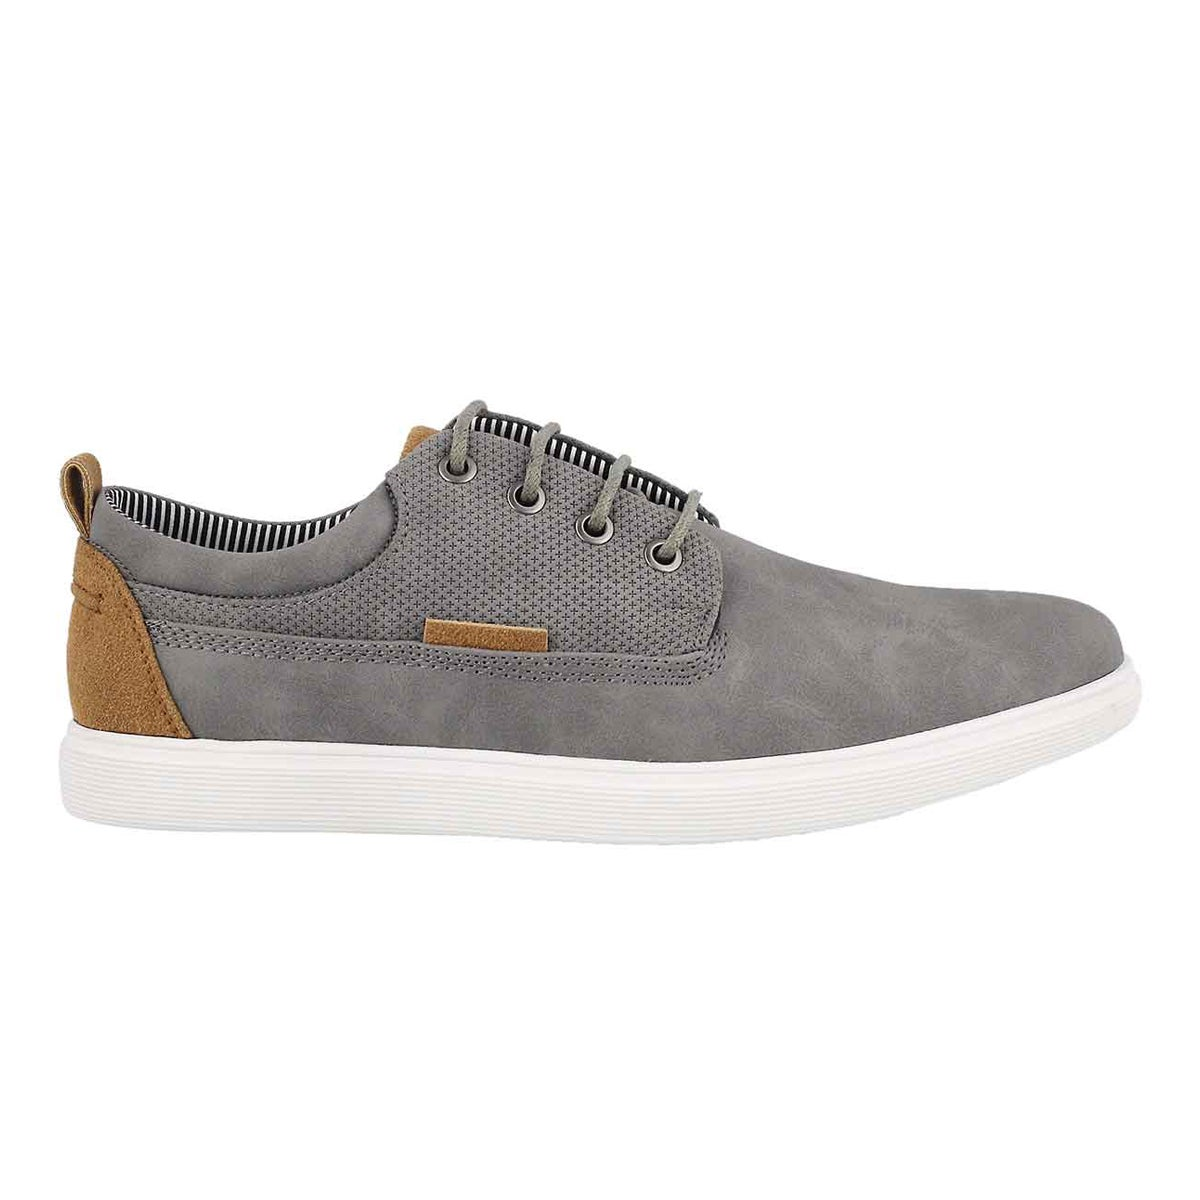 Mns Rangle grey lace up casual oxford